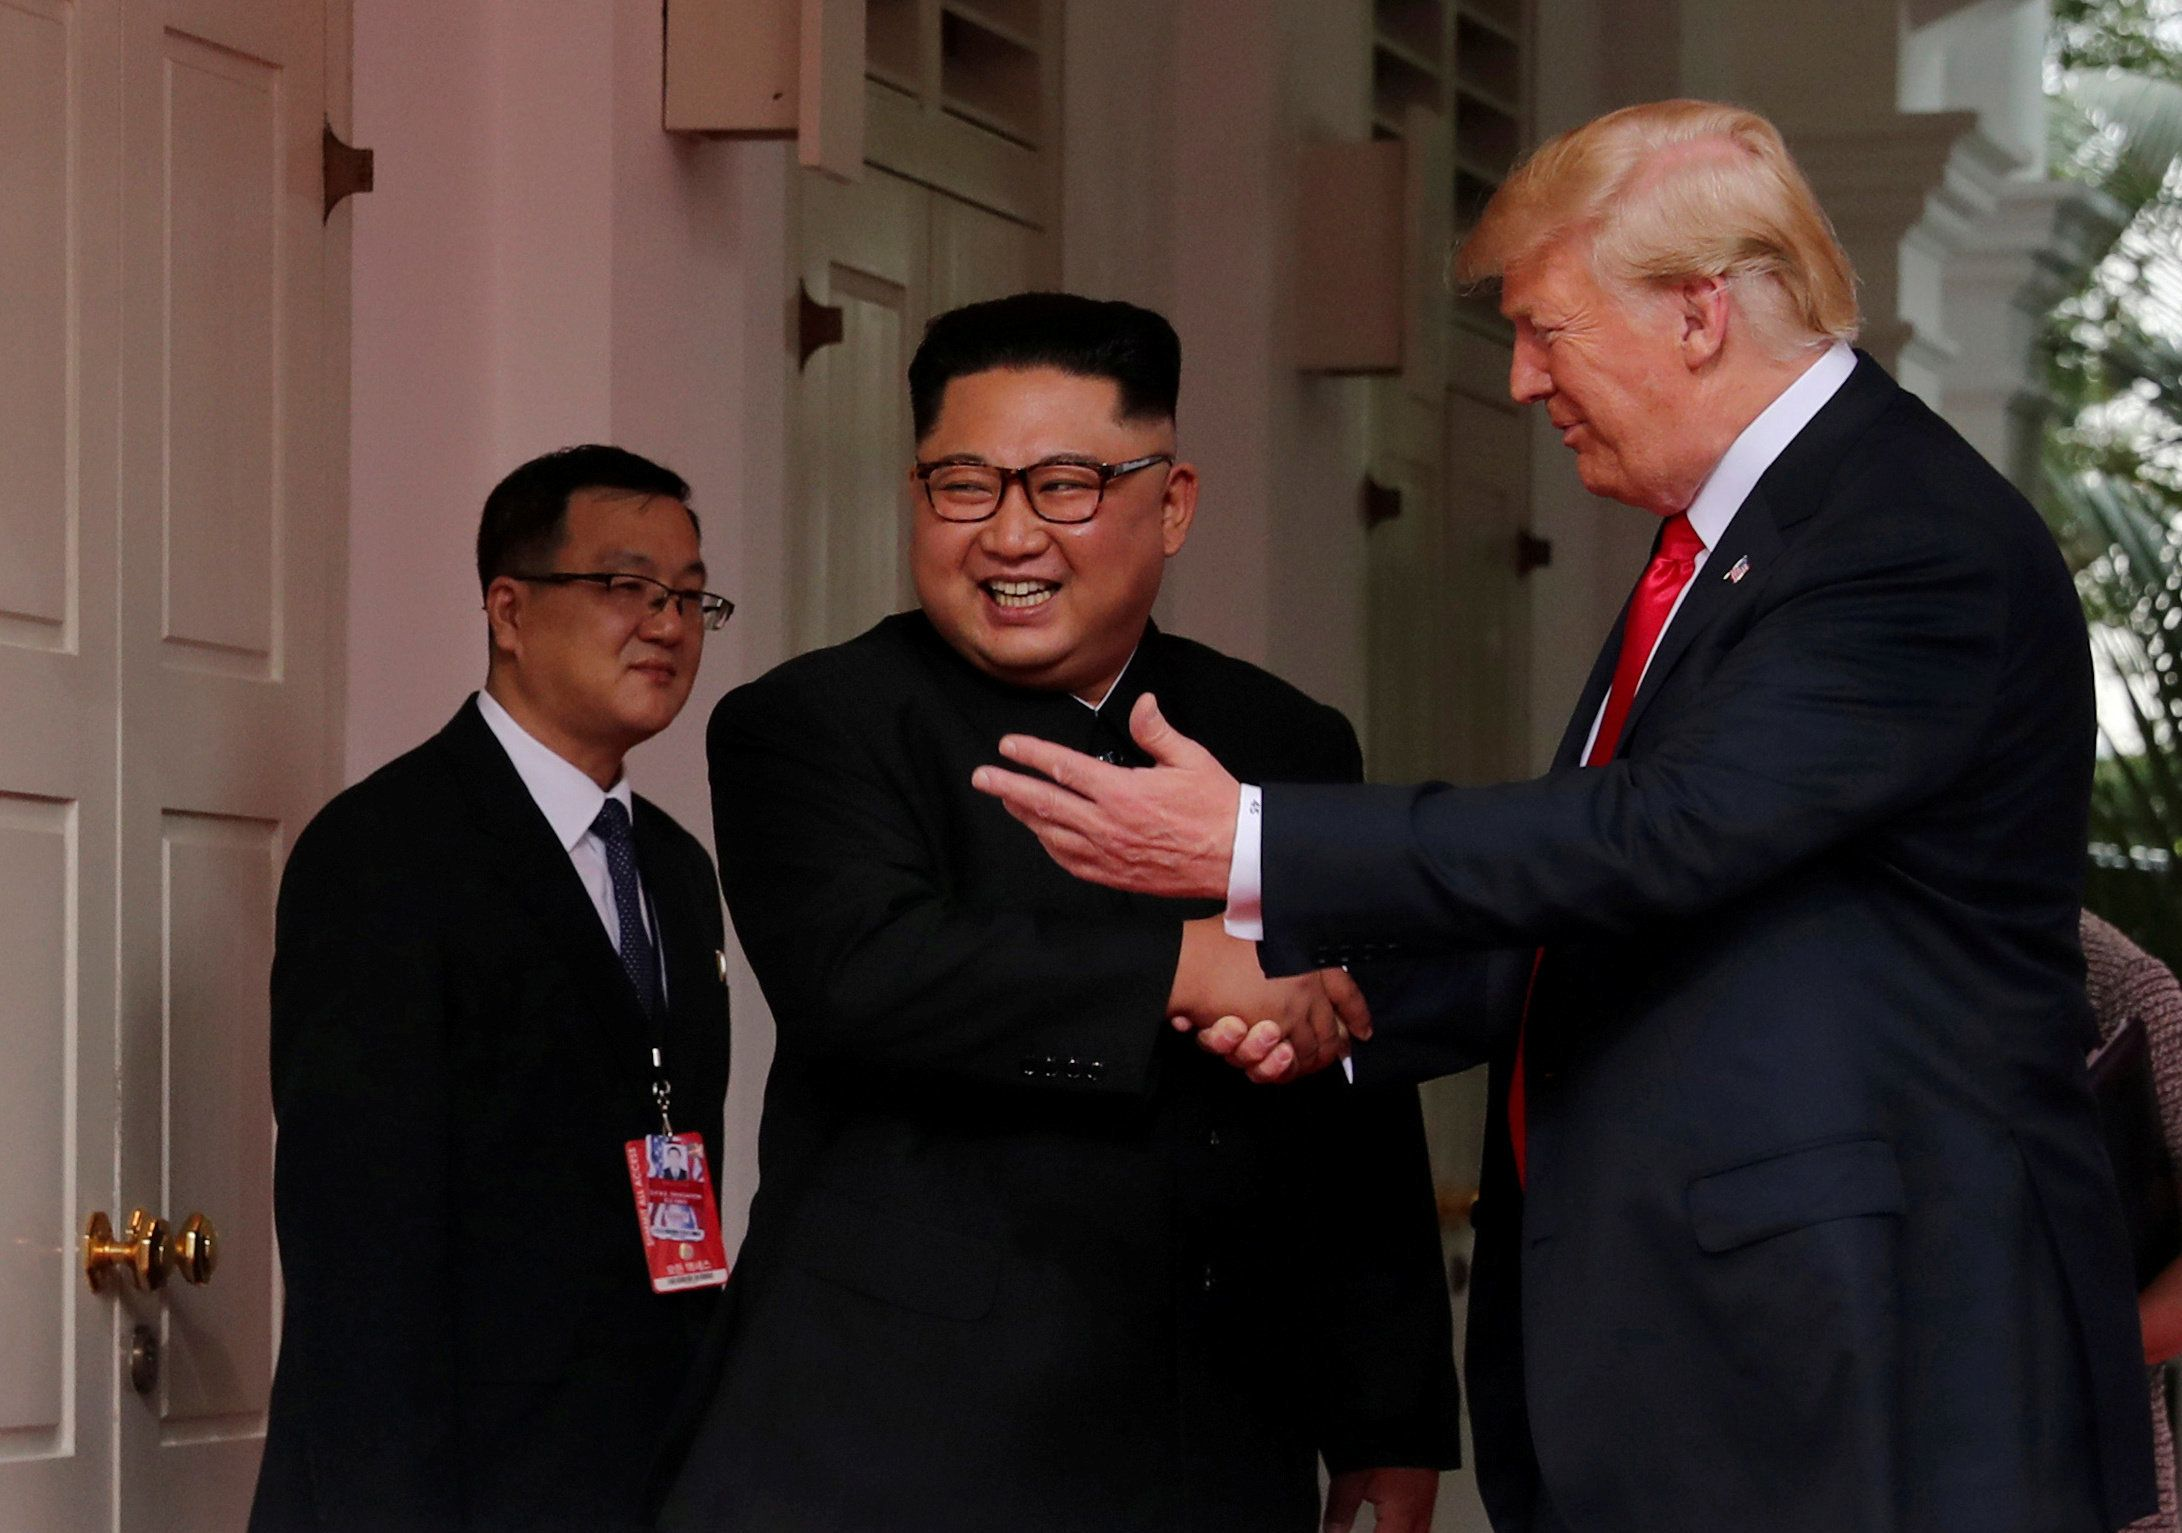 Trump and Kim sign agreement on denuclearization